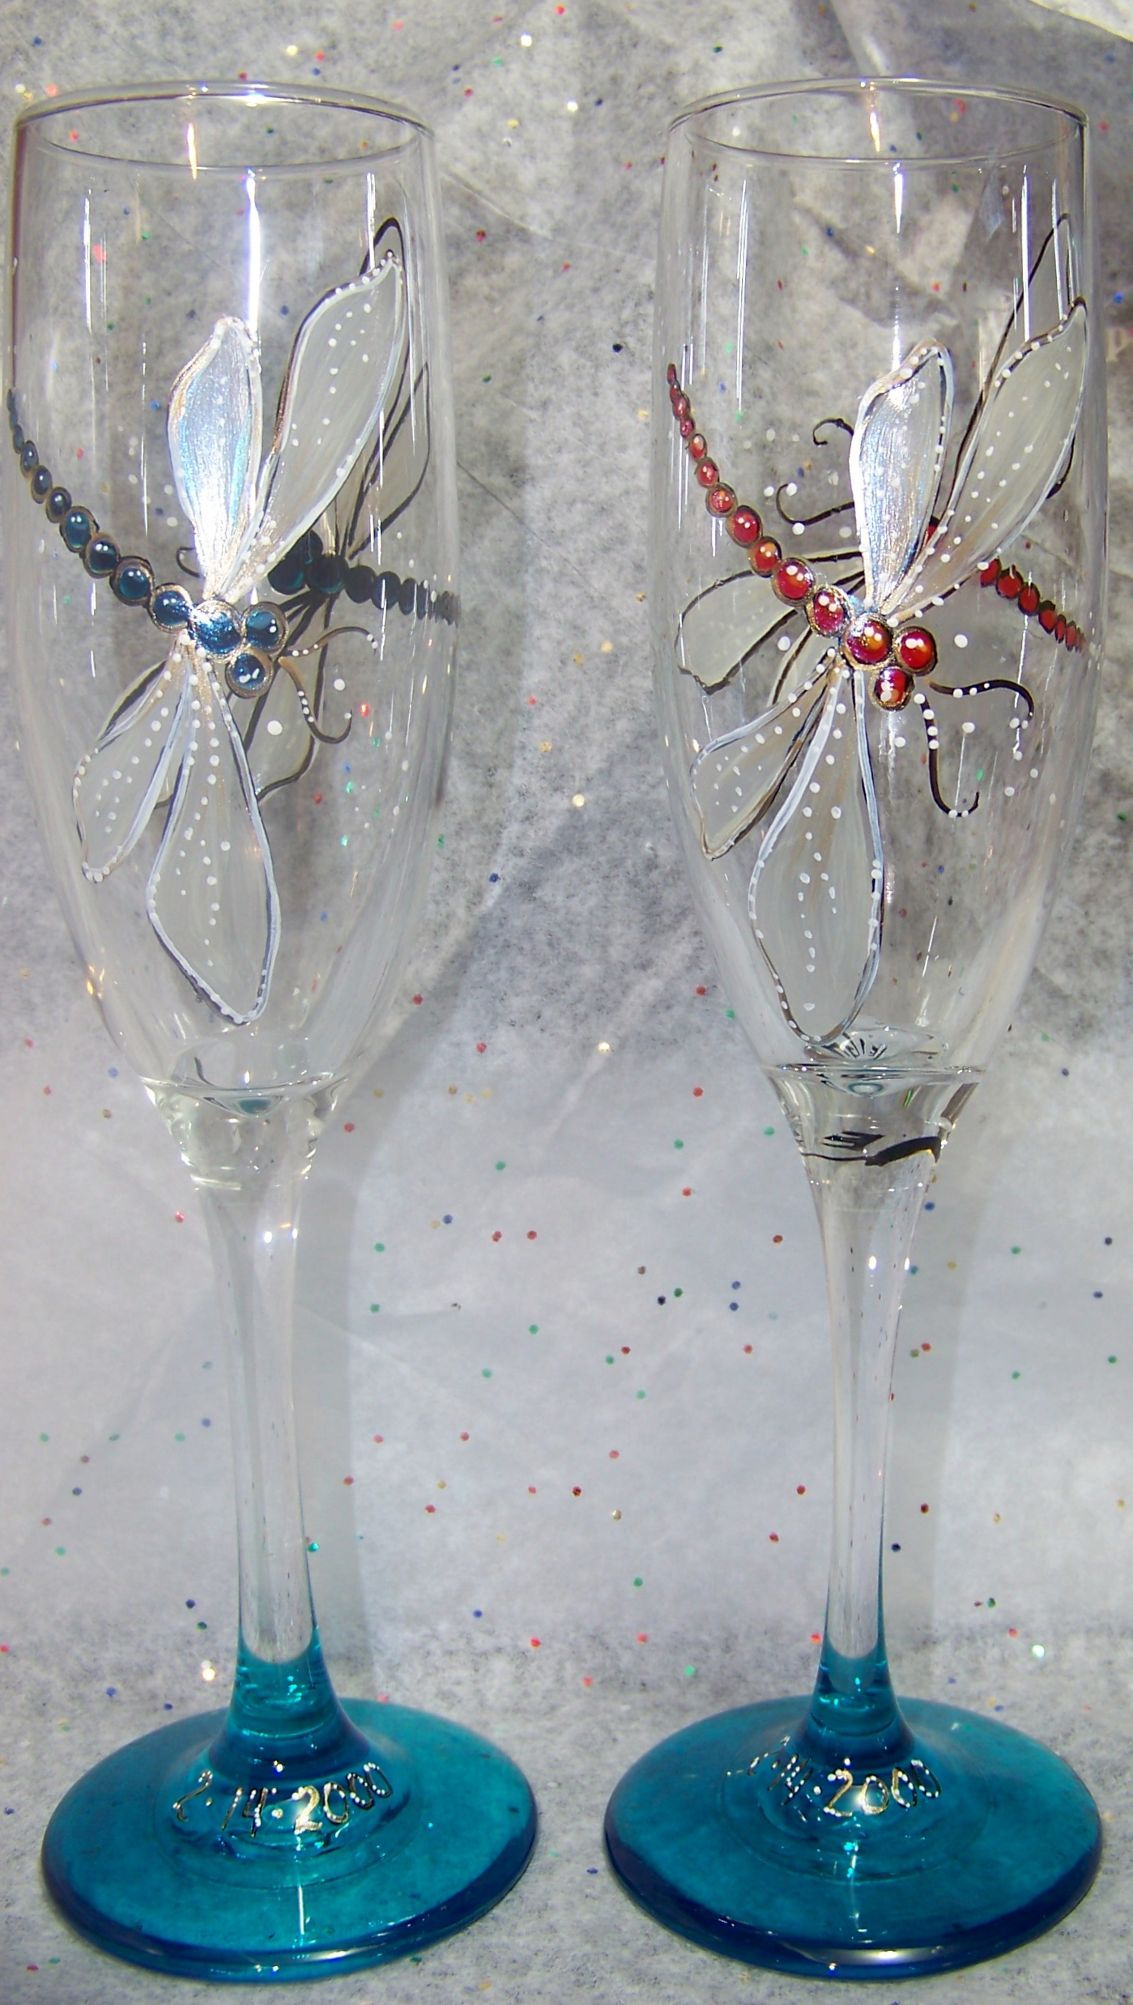 stained glass dragonfly | ... Hand painted Dragonfly Champagne Glass Set have a stained glass effect